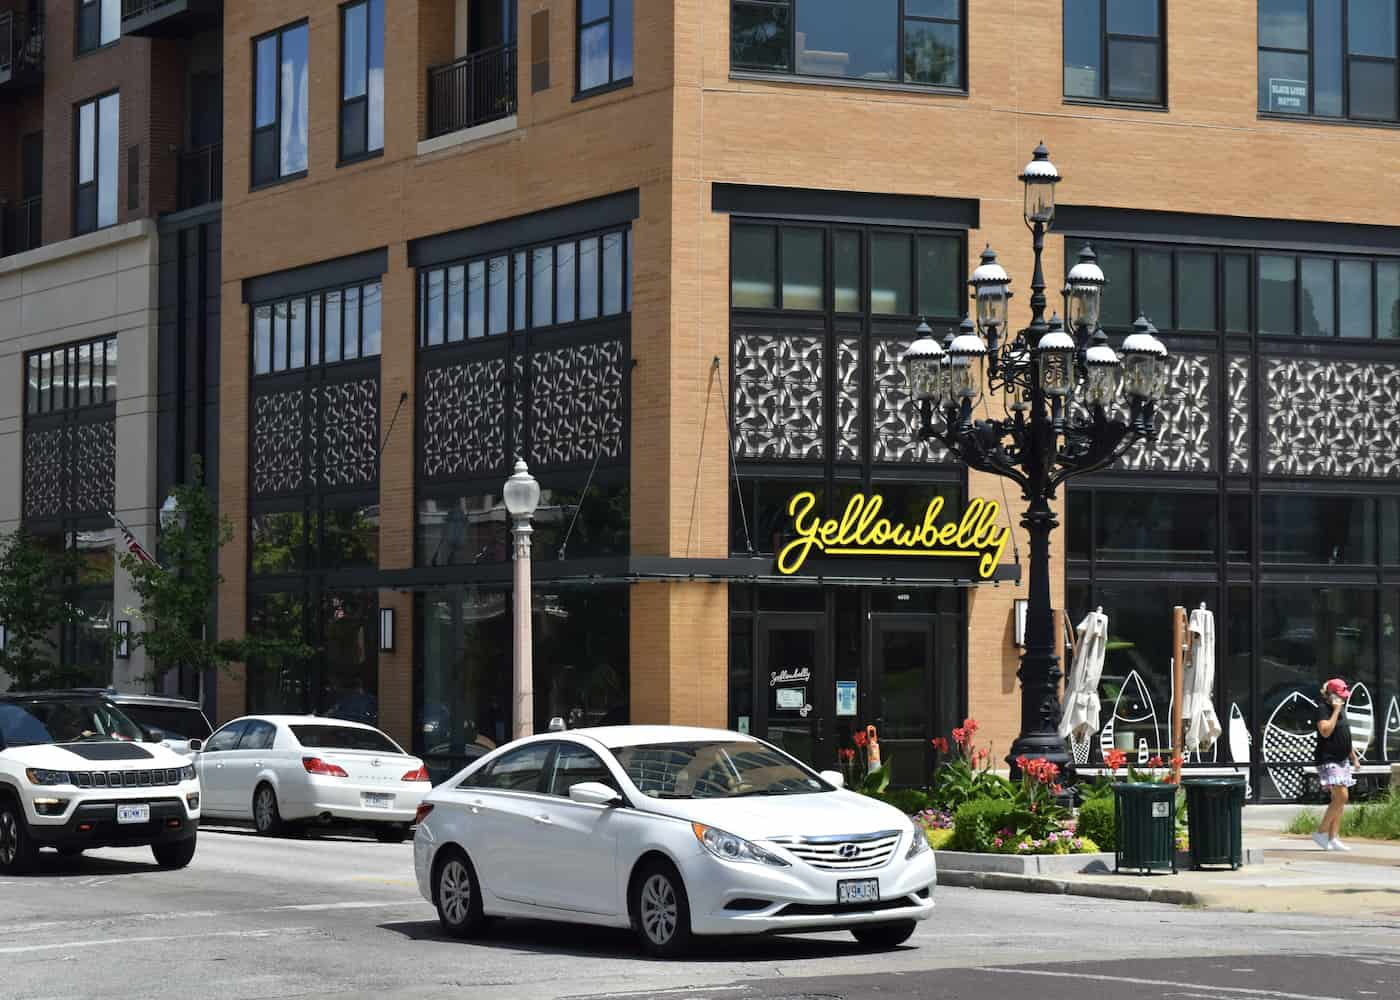 The exterior of Yellowbelly STL